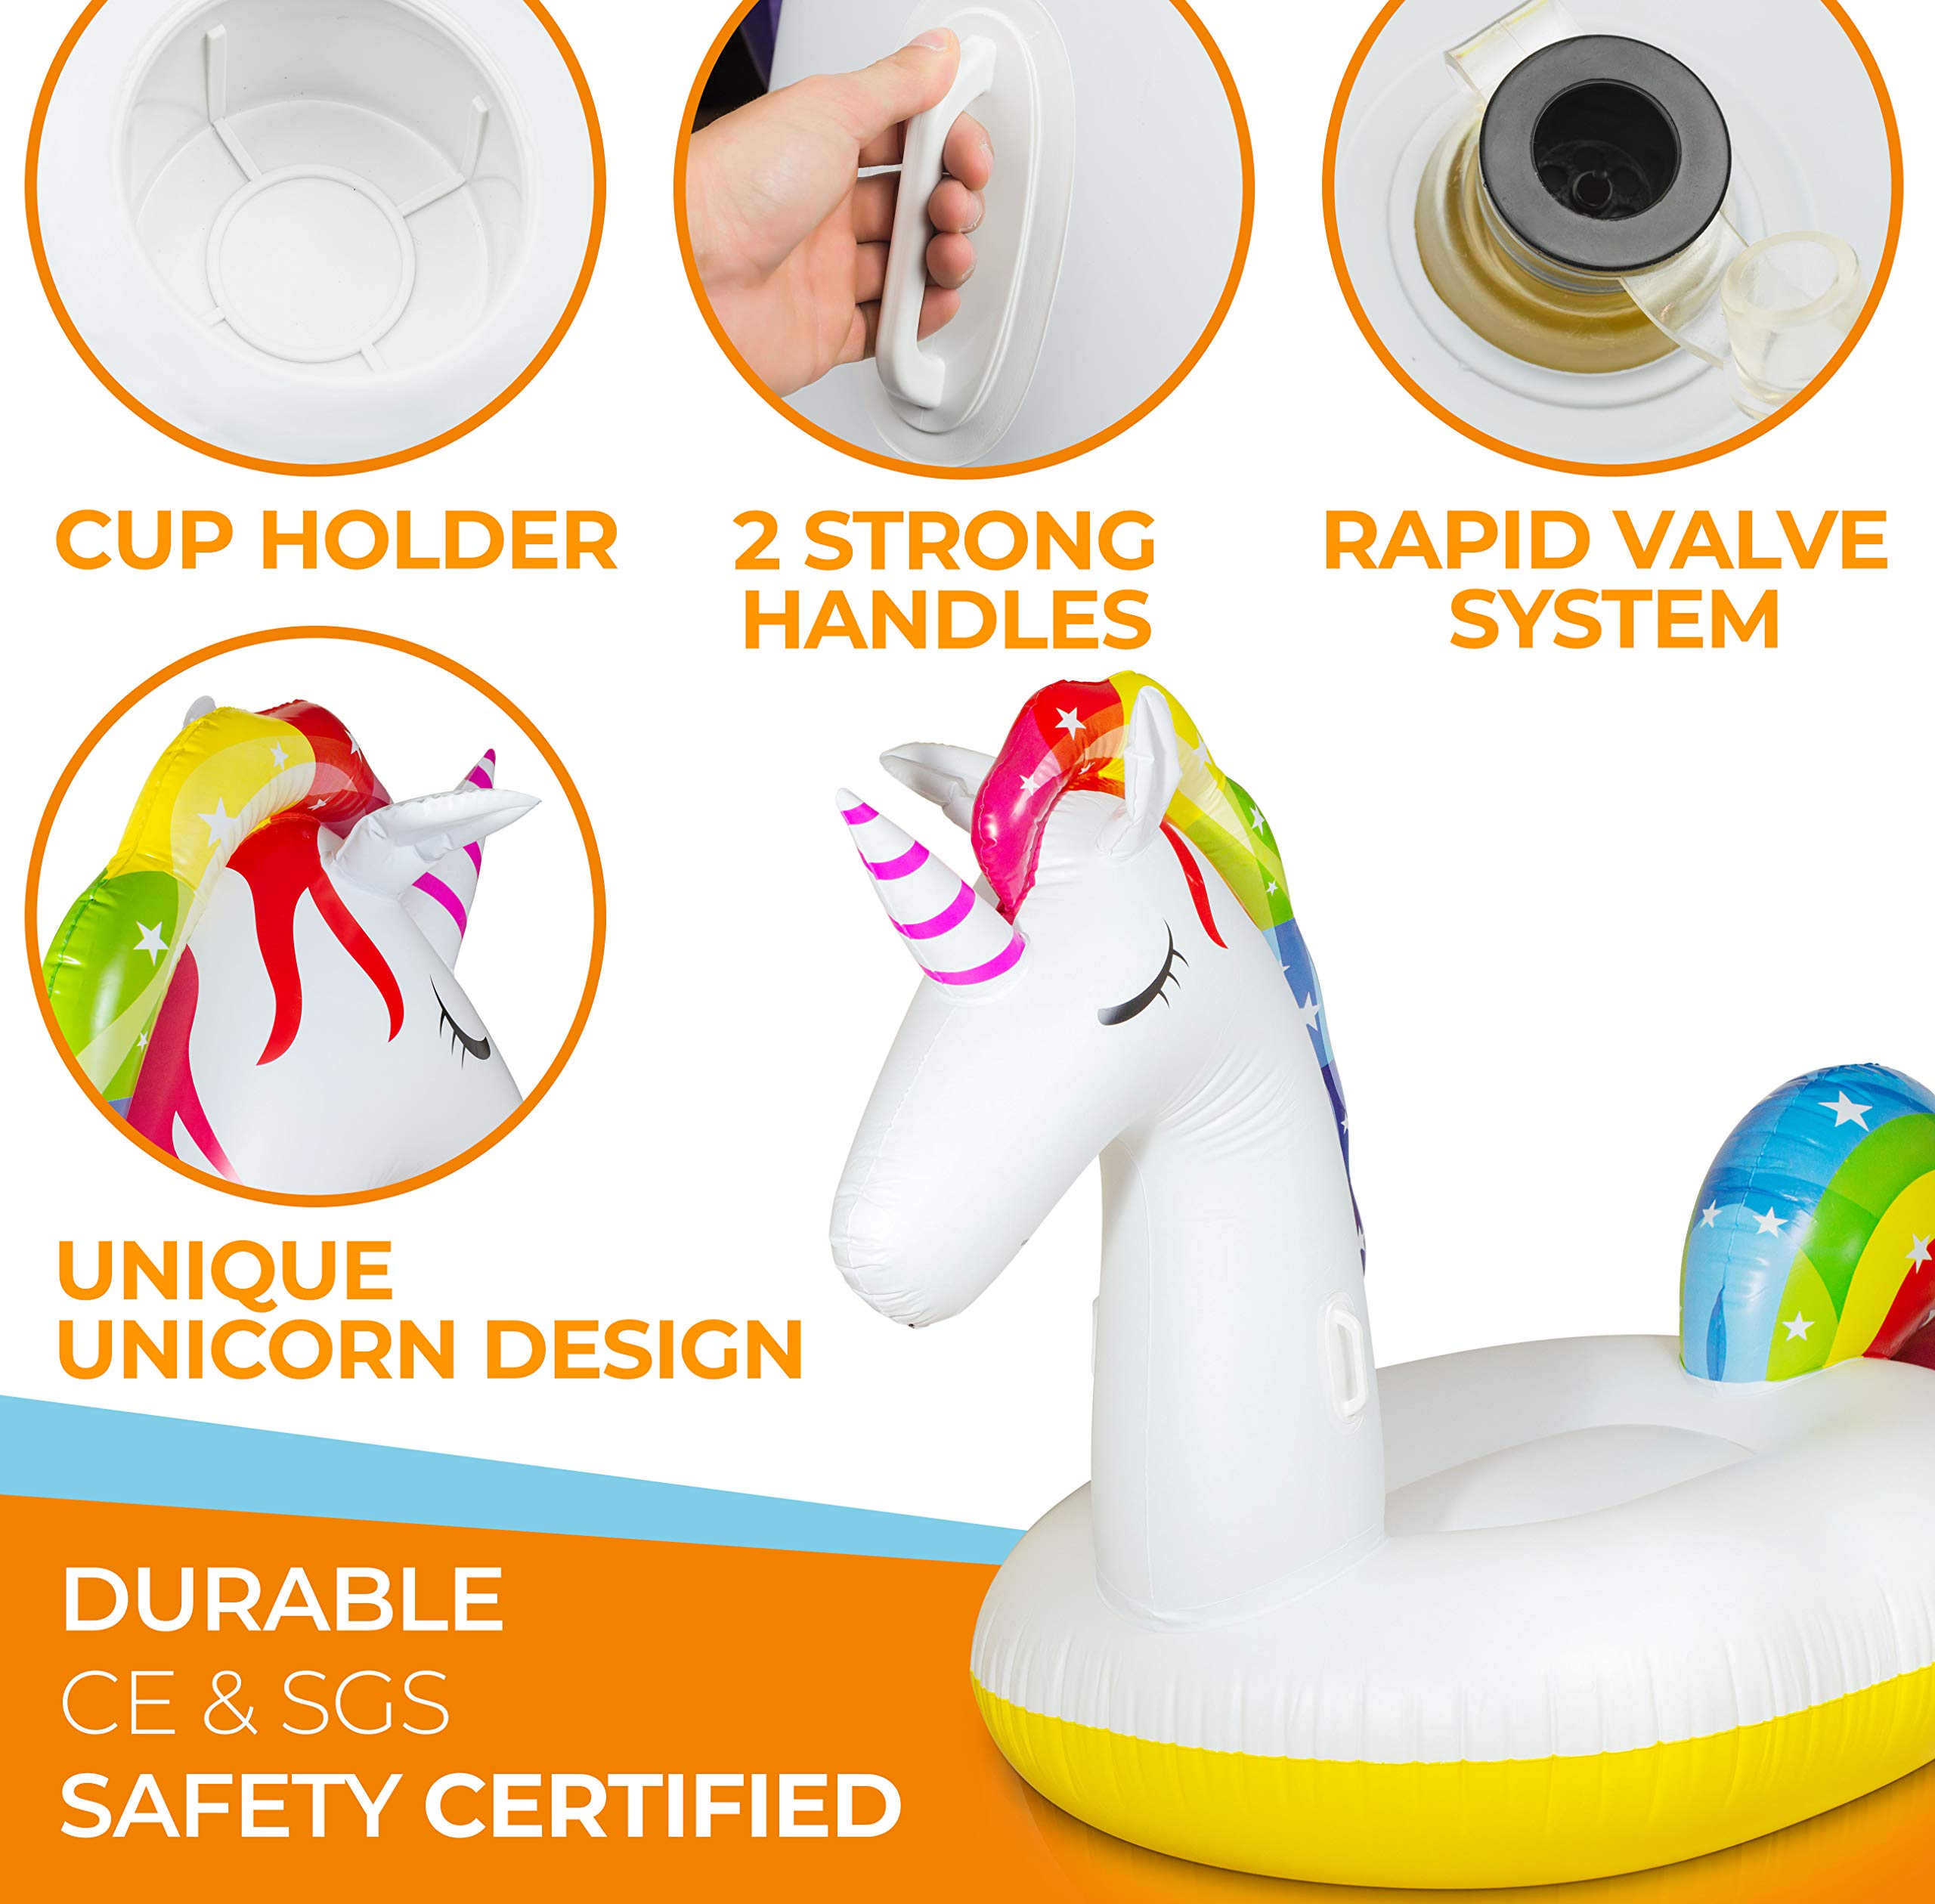 Giant Inflatable Unicorn Pool Float – Rapid Inflate and Deflate, Cup Holder, Safety Grab Handles, CE and SGS Certified… 8